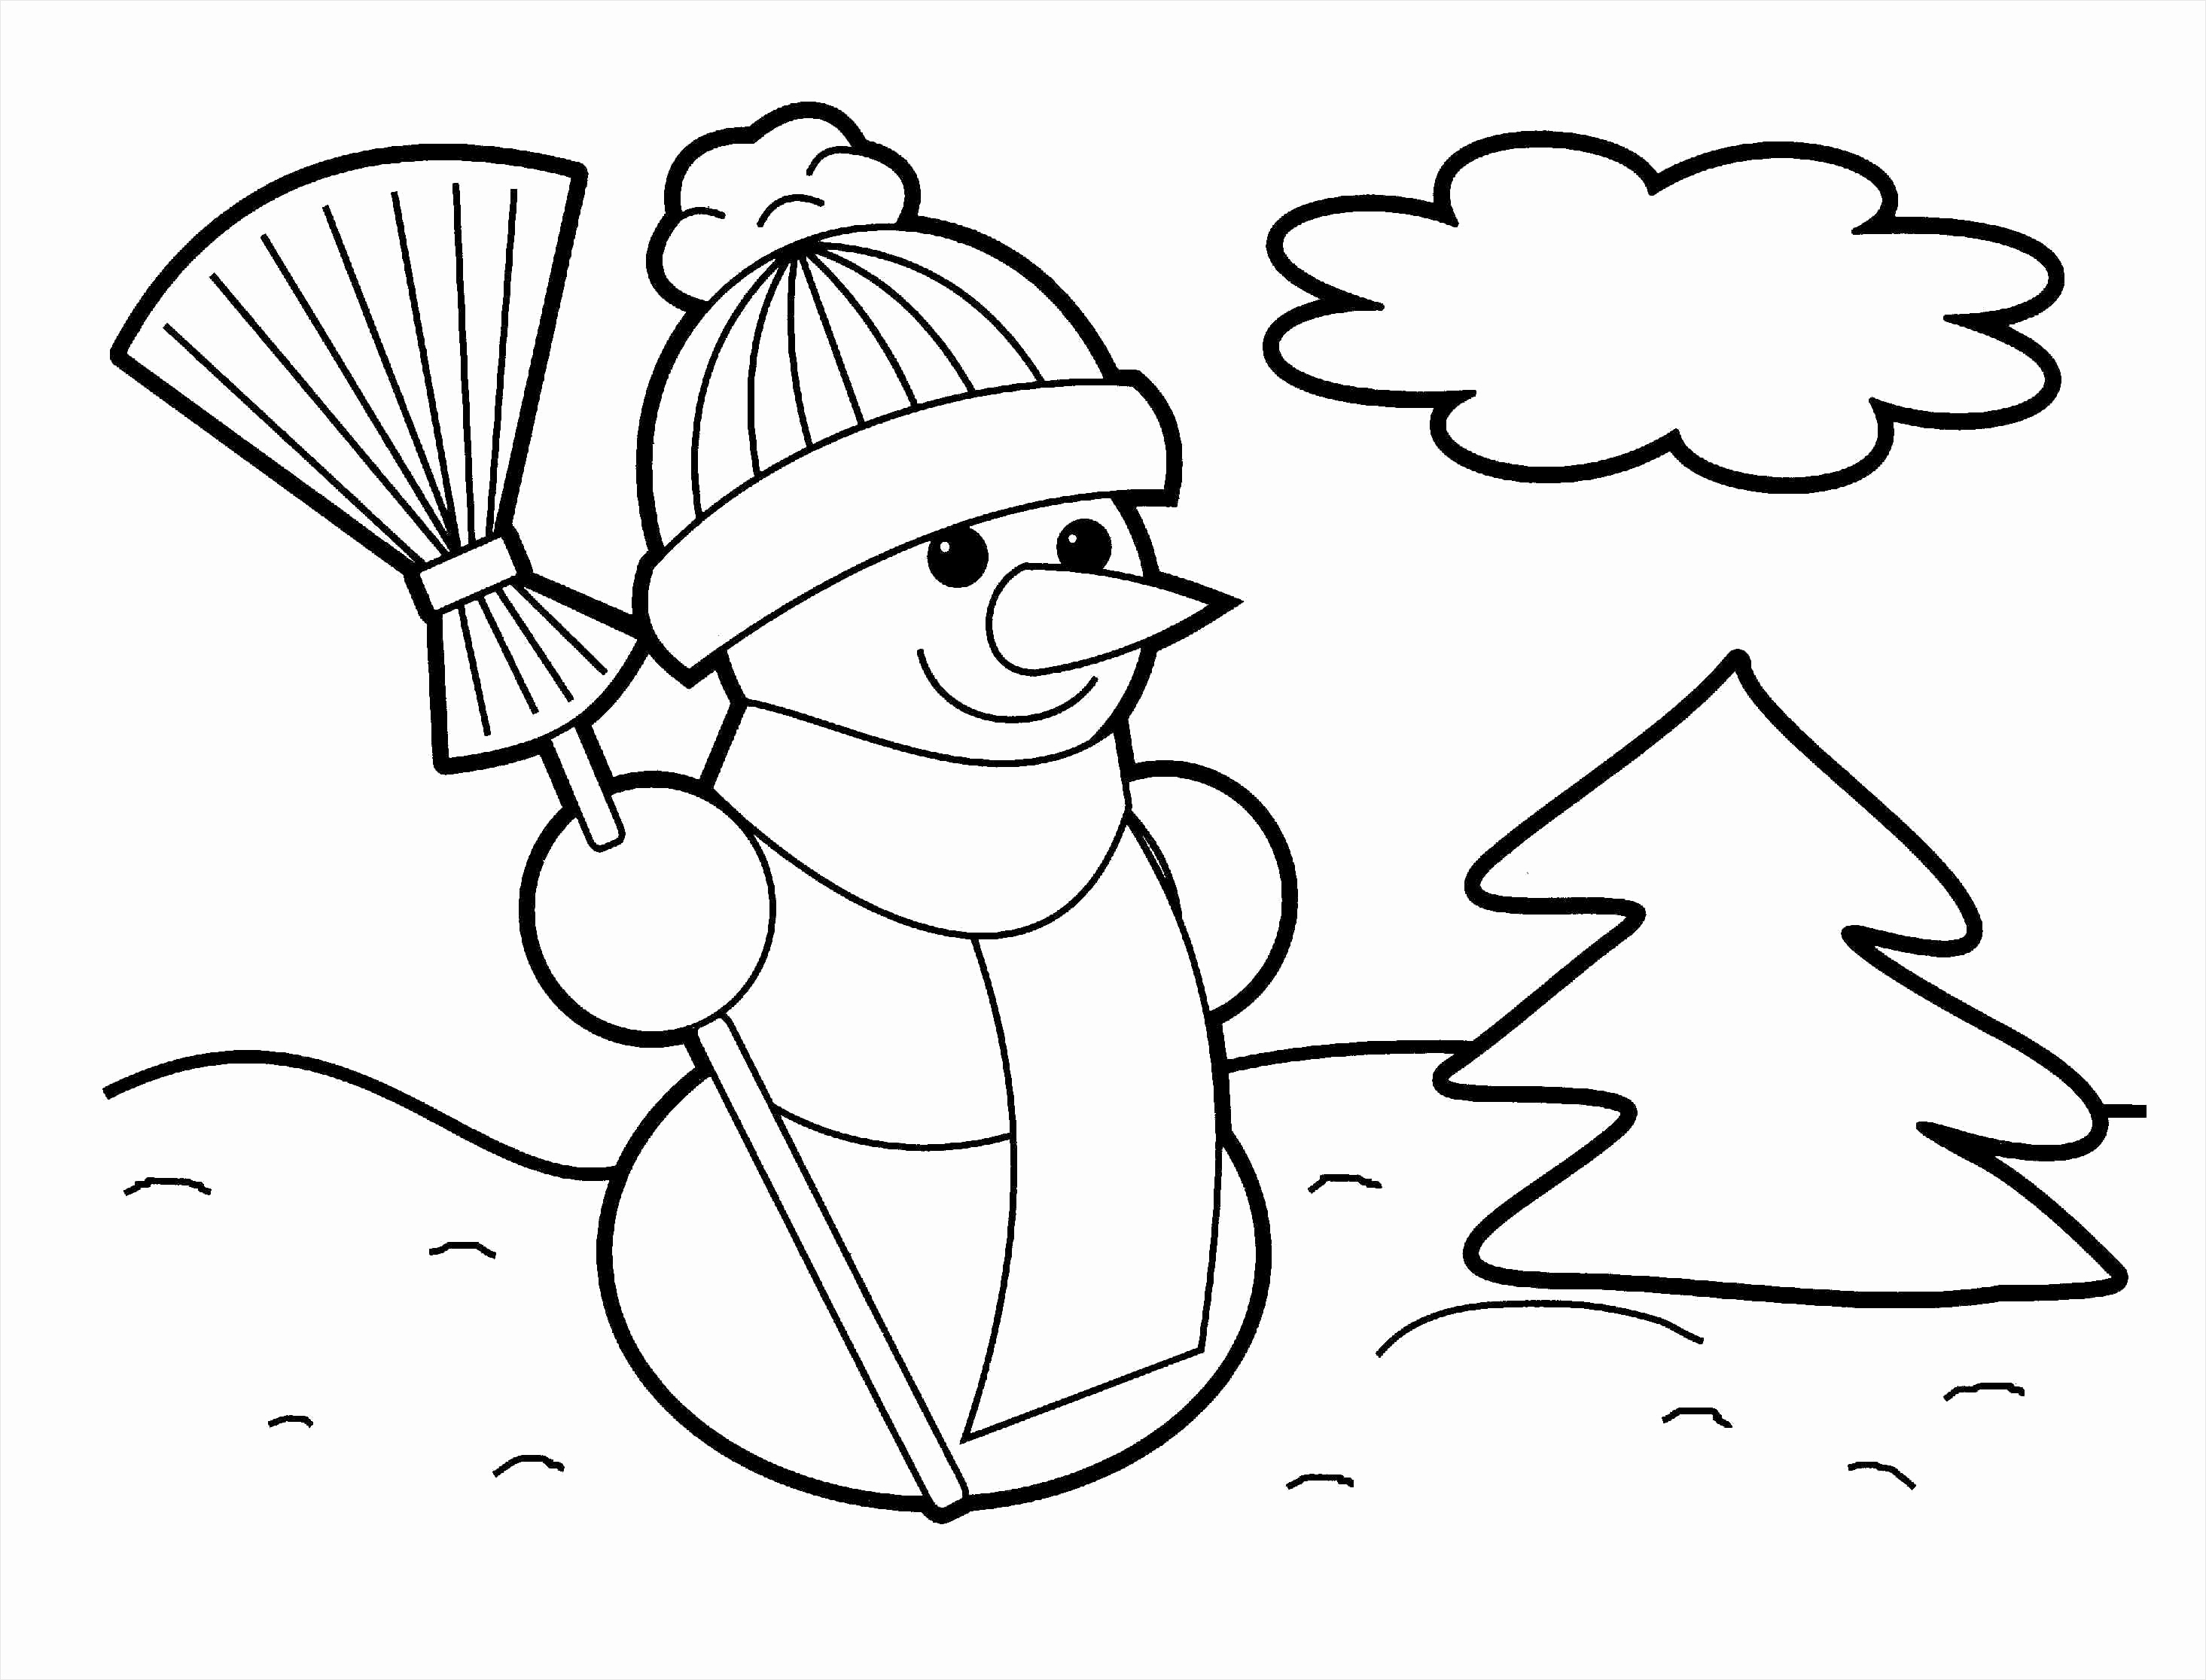 thomas coloring pages Collection-Color Pages to Print Elegant Thomas Coloring Pages Printable 14-l